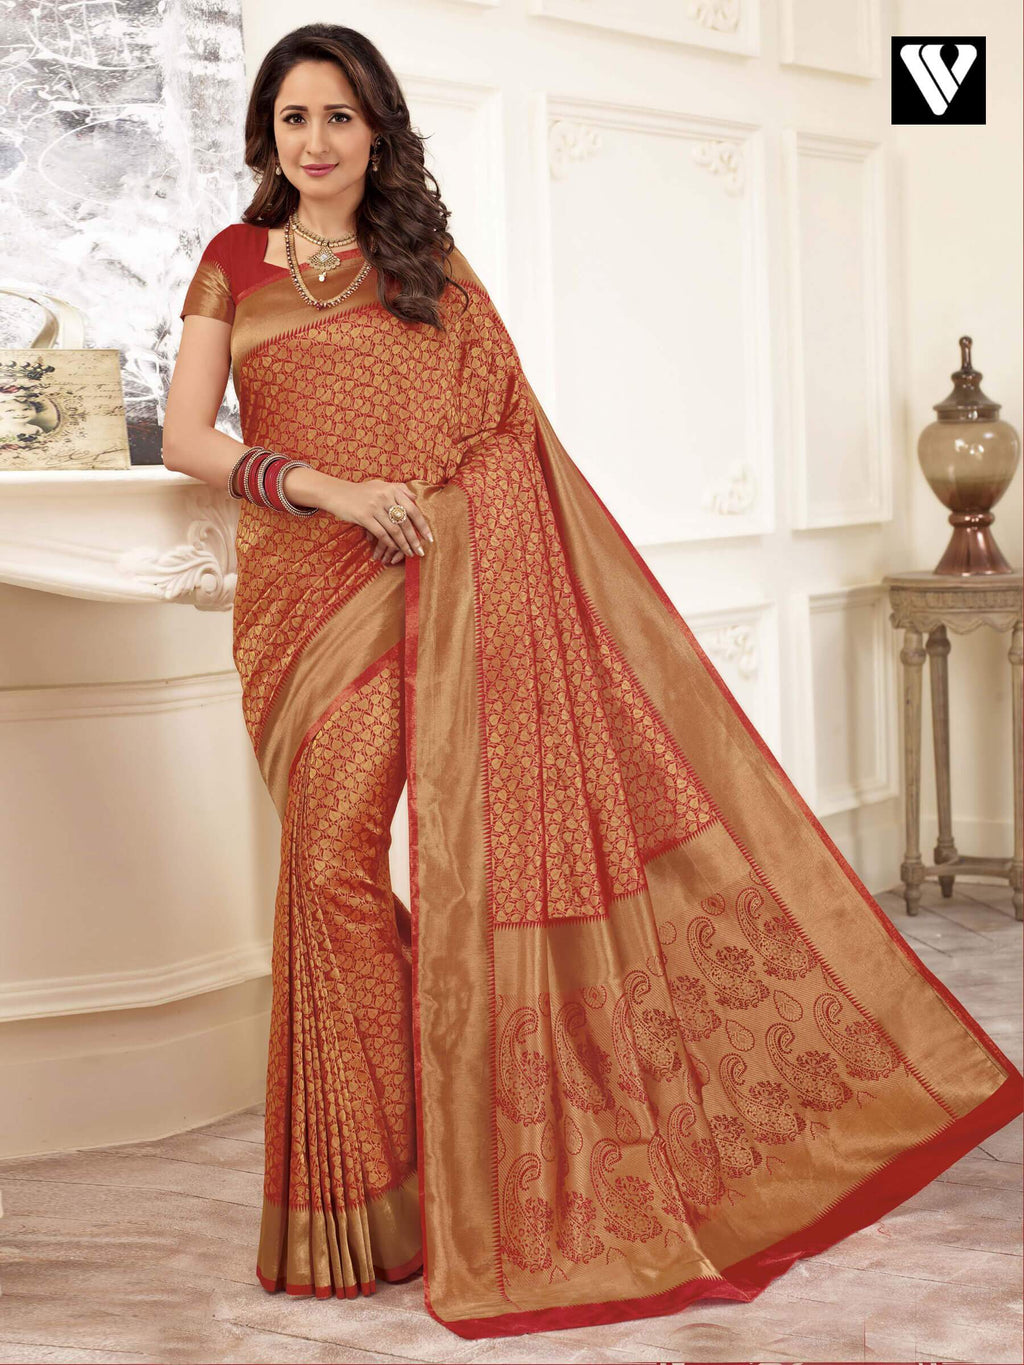 Wedding Wear Banarasi Art Silk Sarees In Red Gold